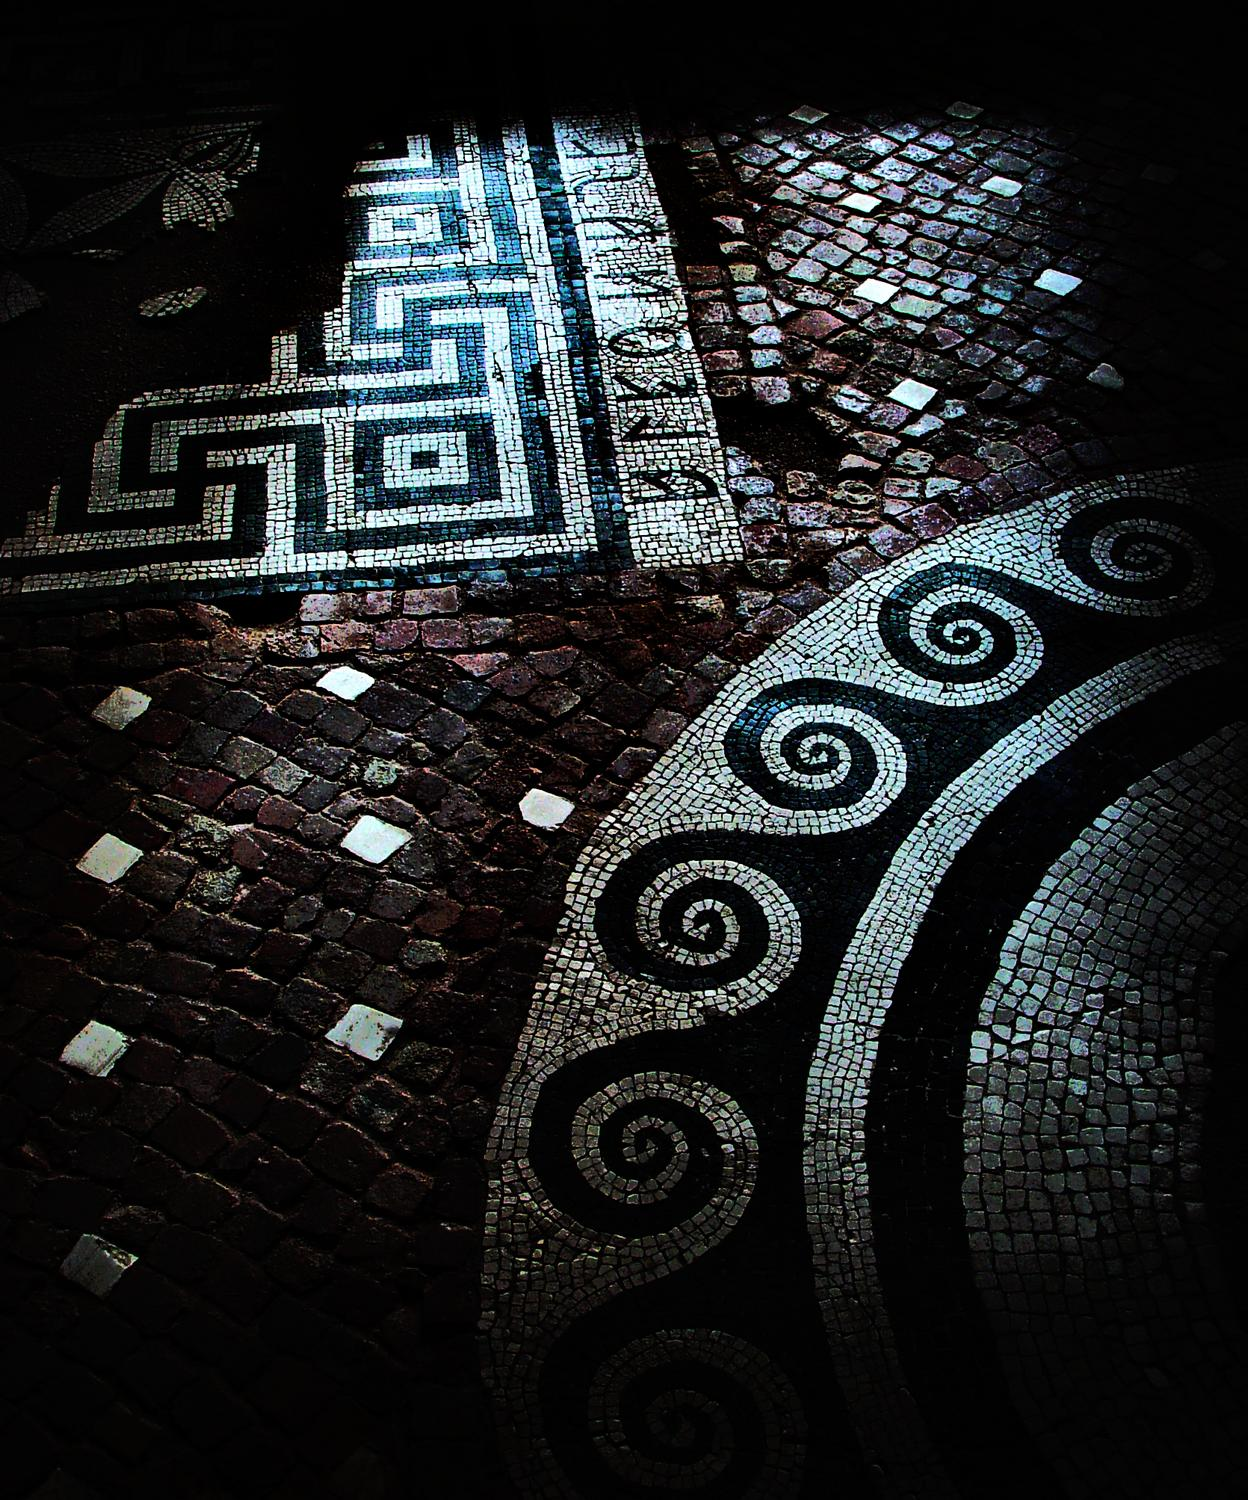 - An Etruscan mosaic floor in Viterbo. - A trip to Rome - by Tony Karp - Rome - Vatican - Gubbio - Viterbo - Spoleto - - - art  - photography - by Tony Karp